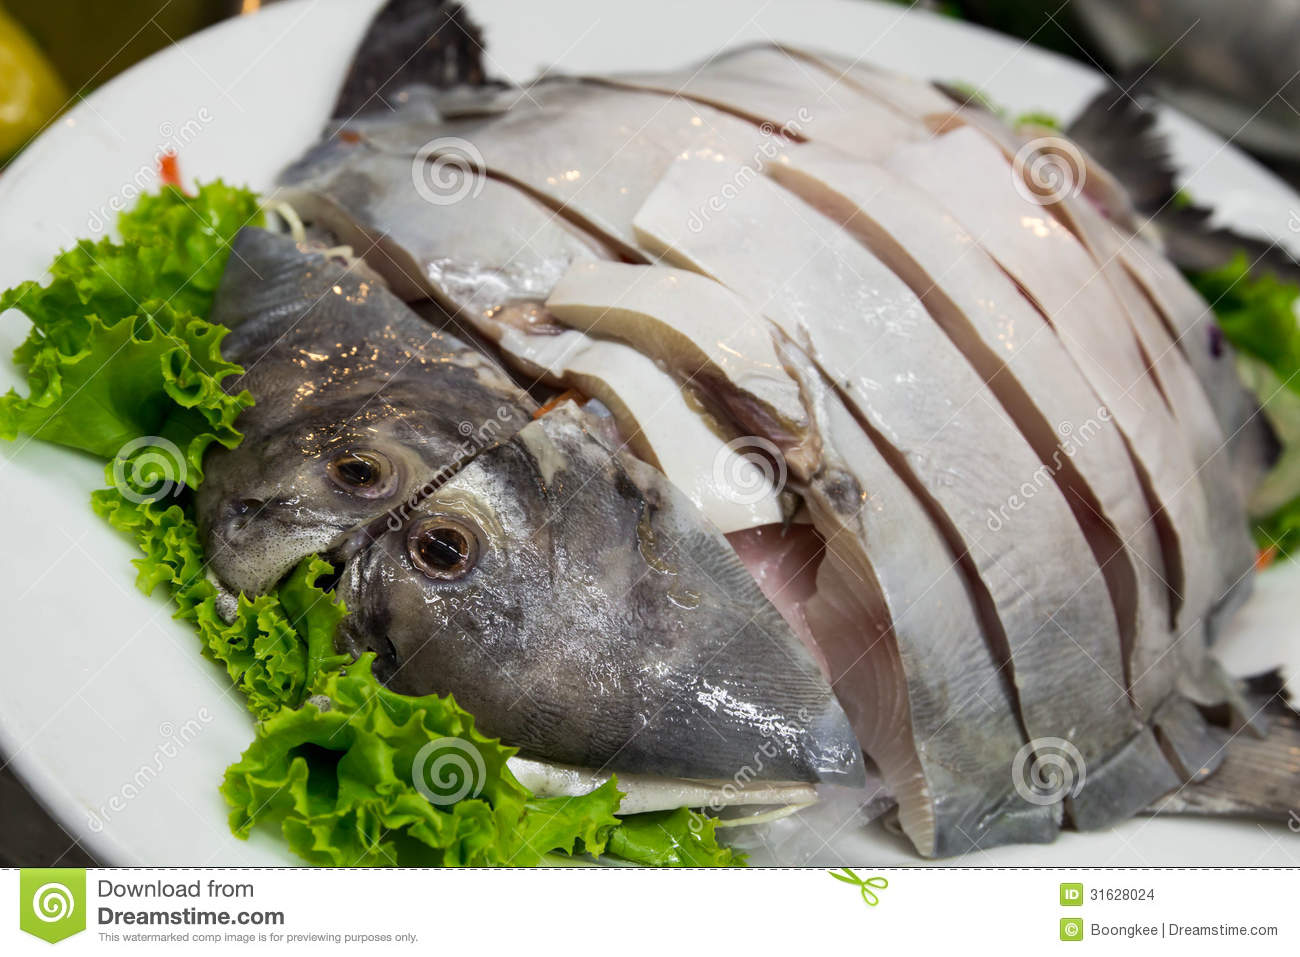 White Pomfret fish stock photo. Image of aquatic, meal ...